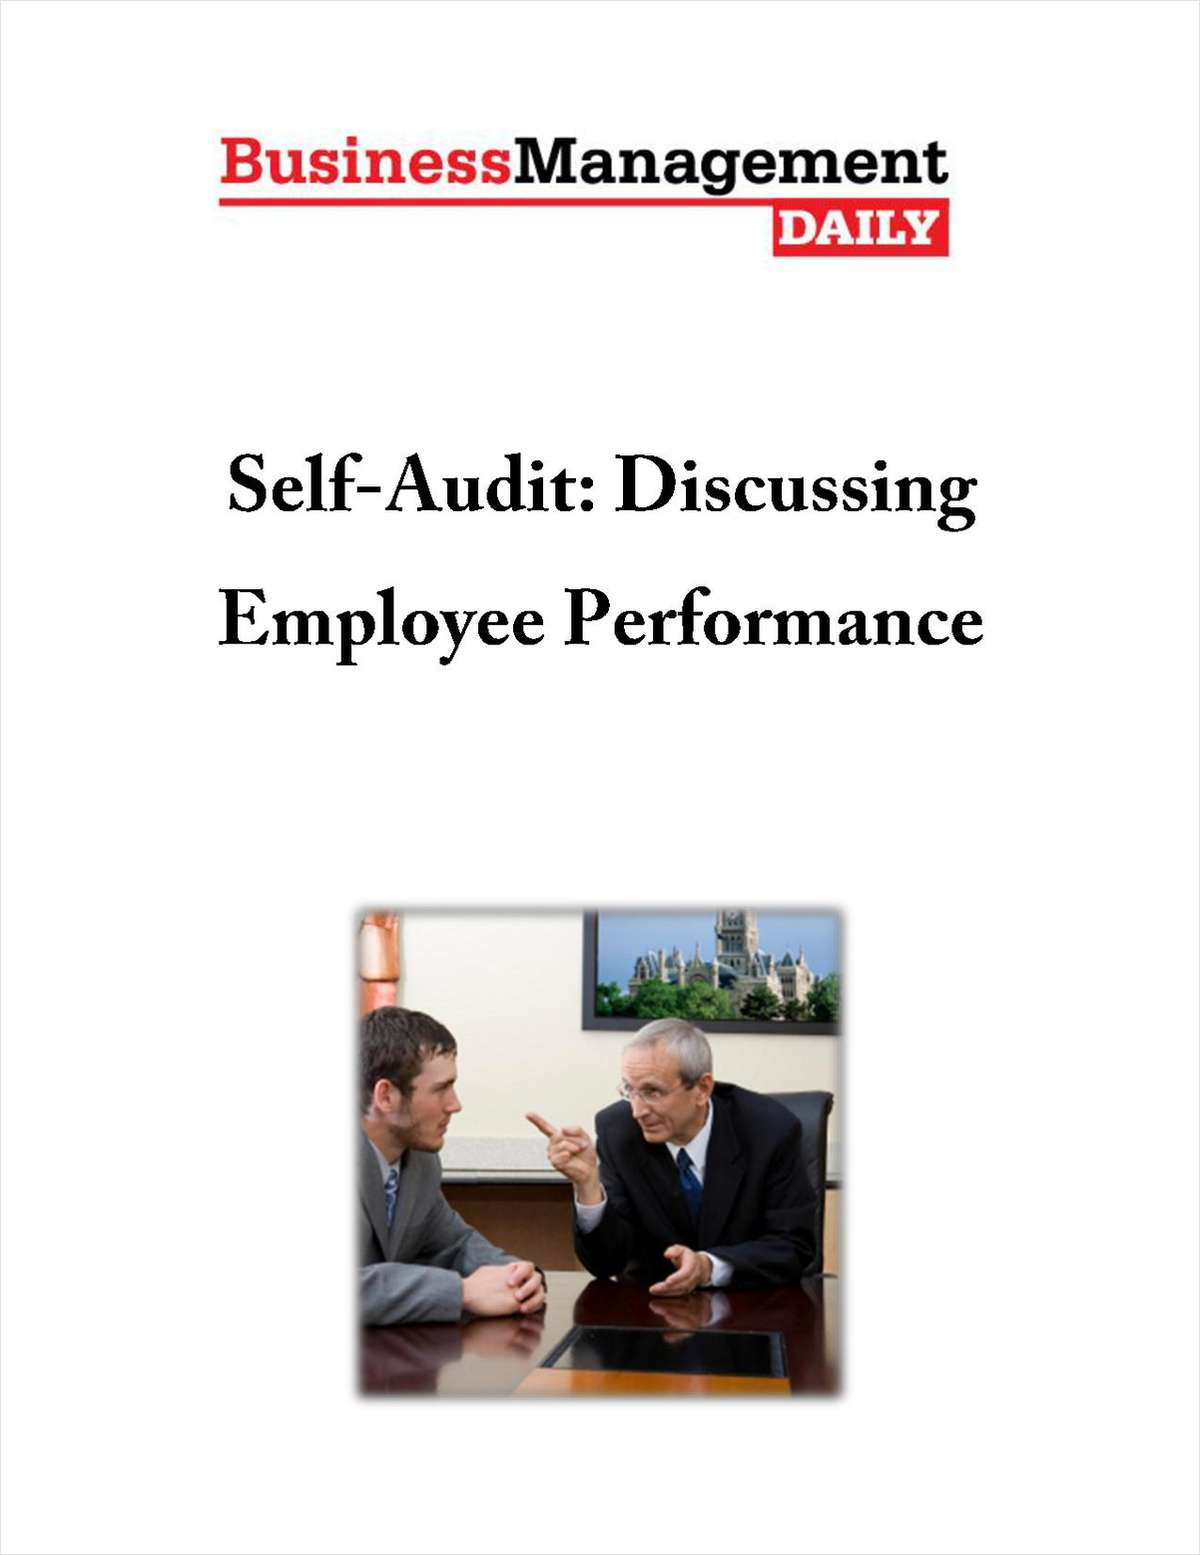 Self-Audit: Discussing Employee Performance